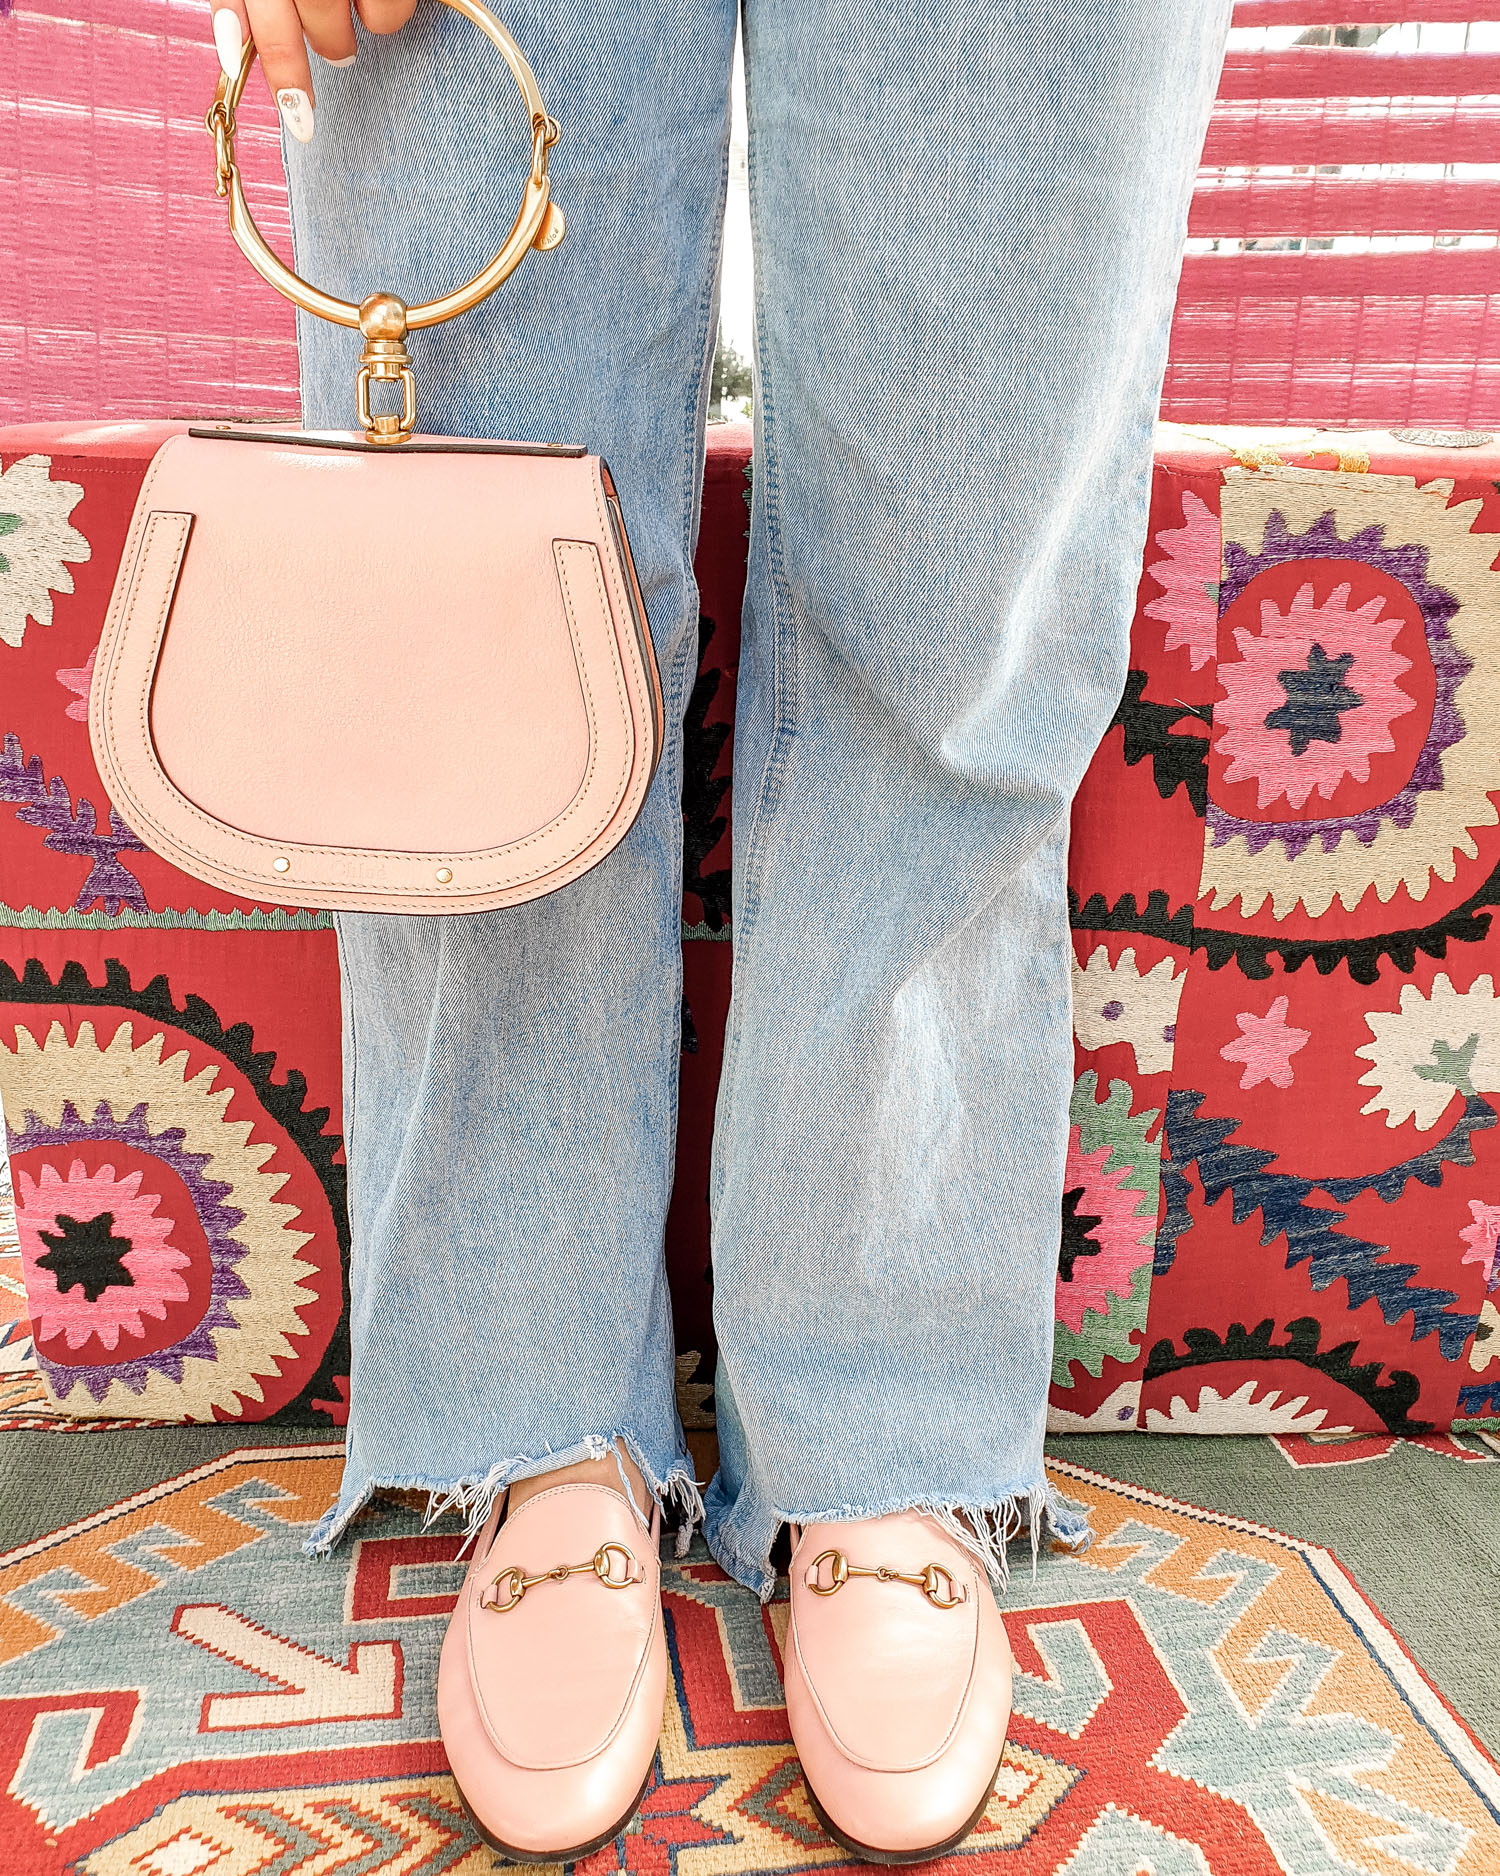 70s inspired fashion | Missguided jeans and Gucci loafers